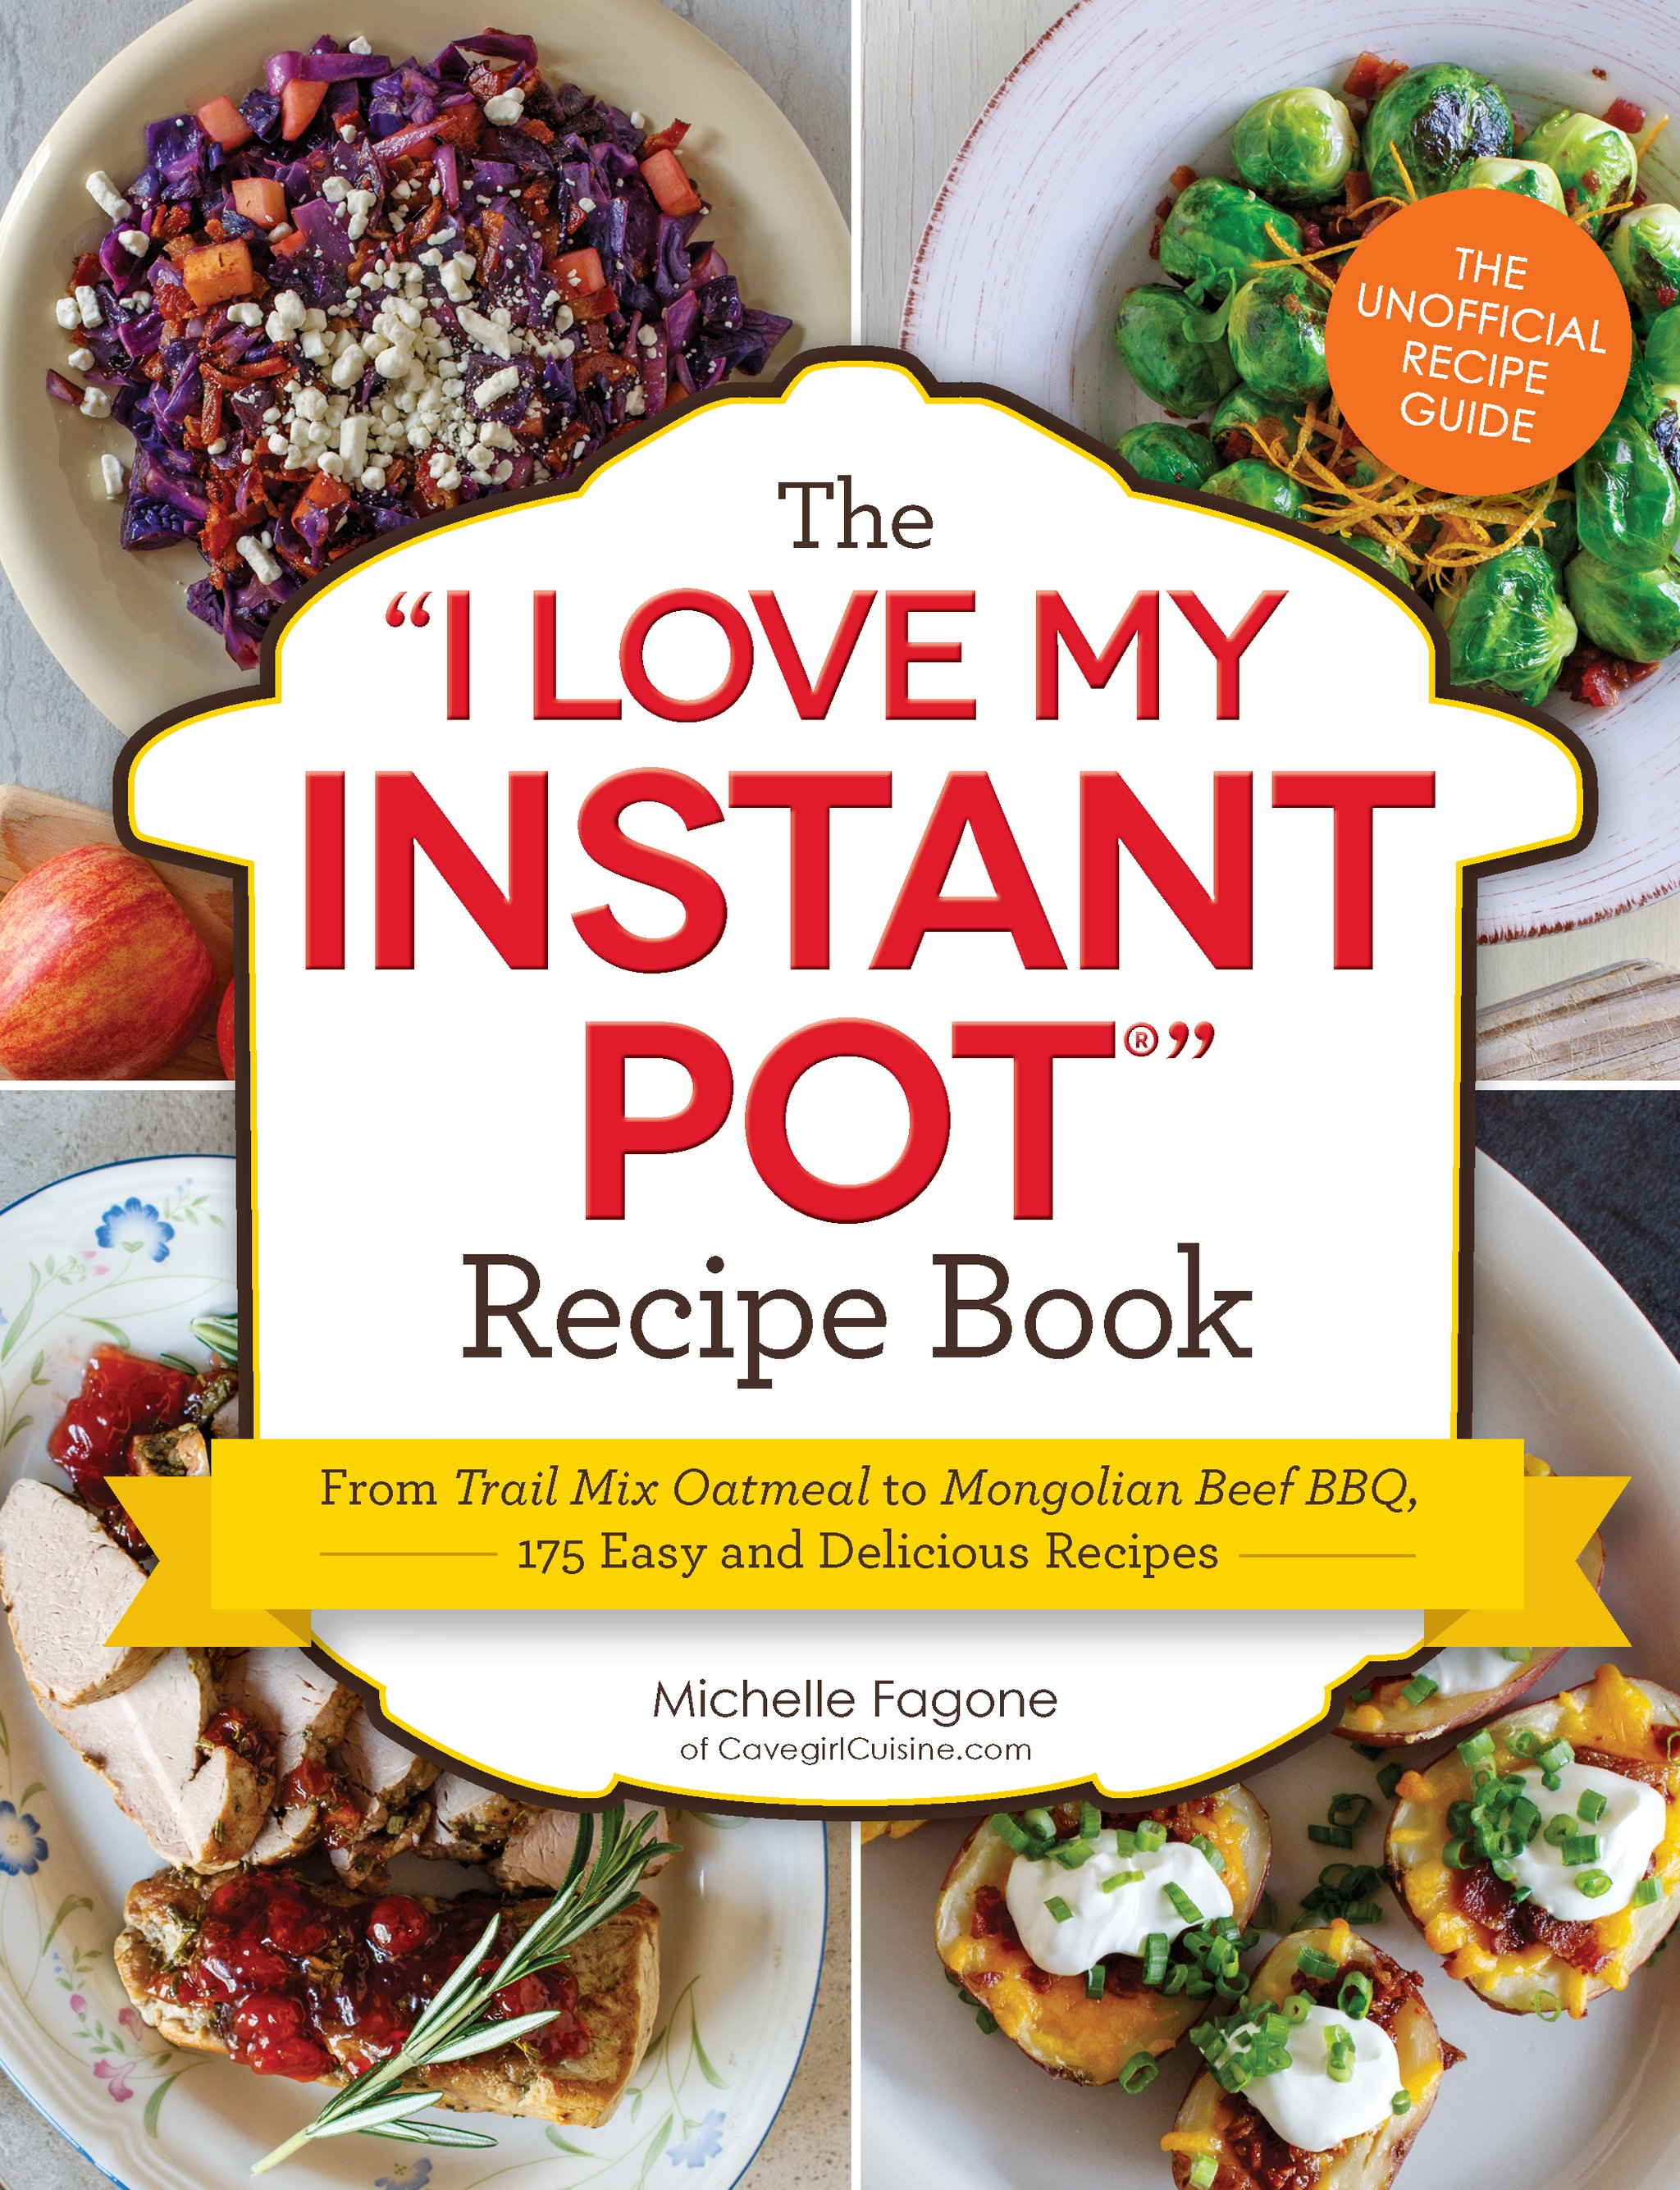 aff2d8c181095afd_I_Love_My_Instant_Pot_Recipe_Book_High_Res_Cover